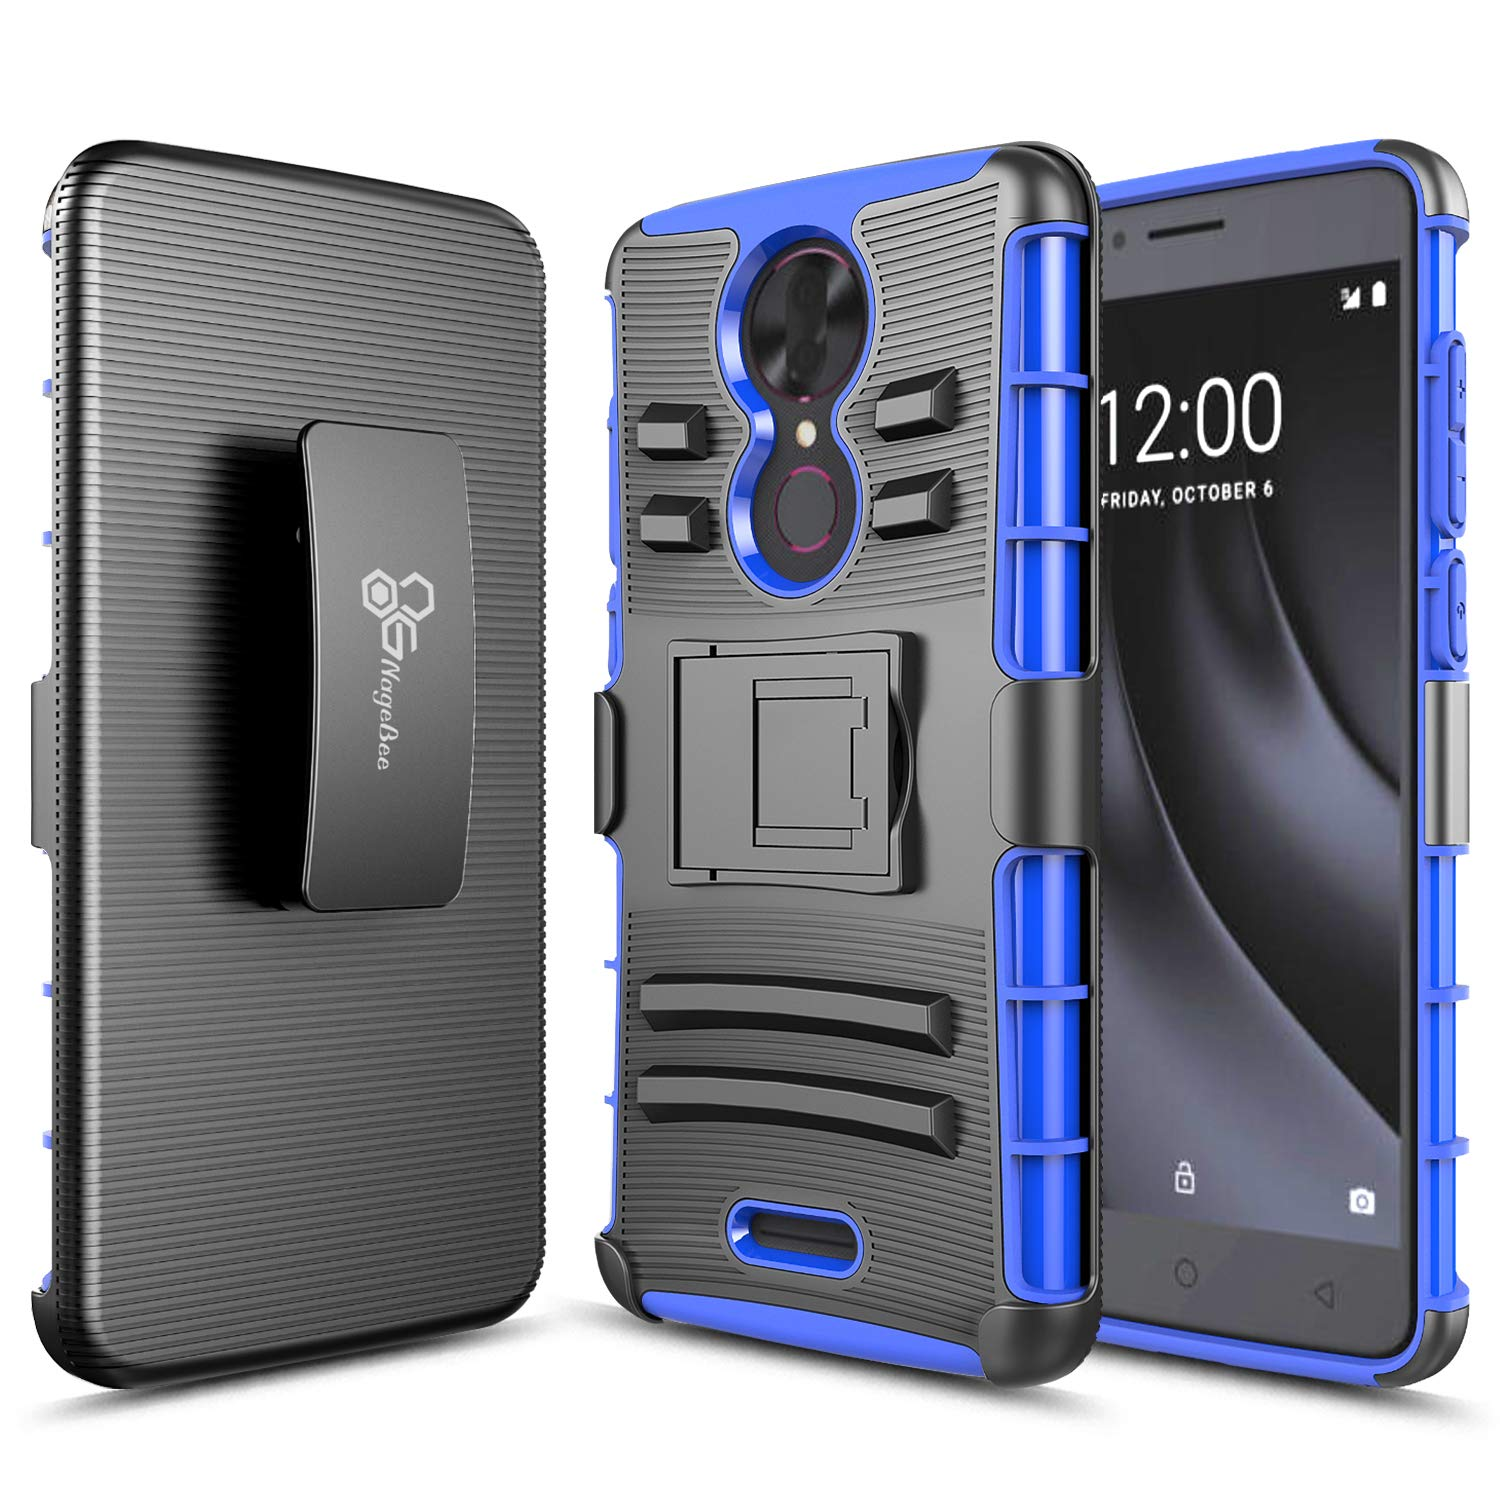 REVVL Plus Case (T-Mobile) NageBee Belt Clip Holster Defender Heavy Duty Shockproof Kickstand Dual Layer Combo Rugged Armor Durable Ultra Protection Case -Blue